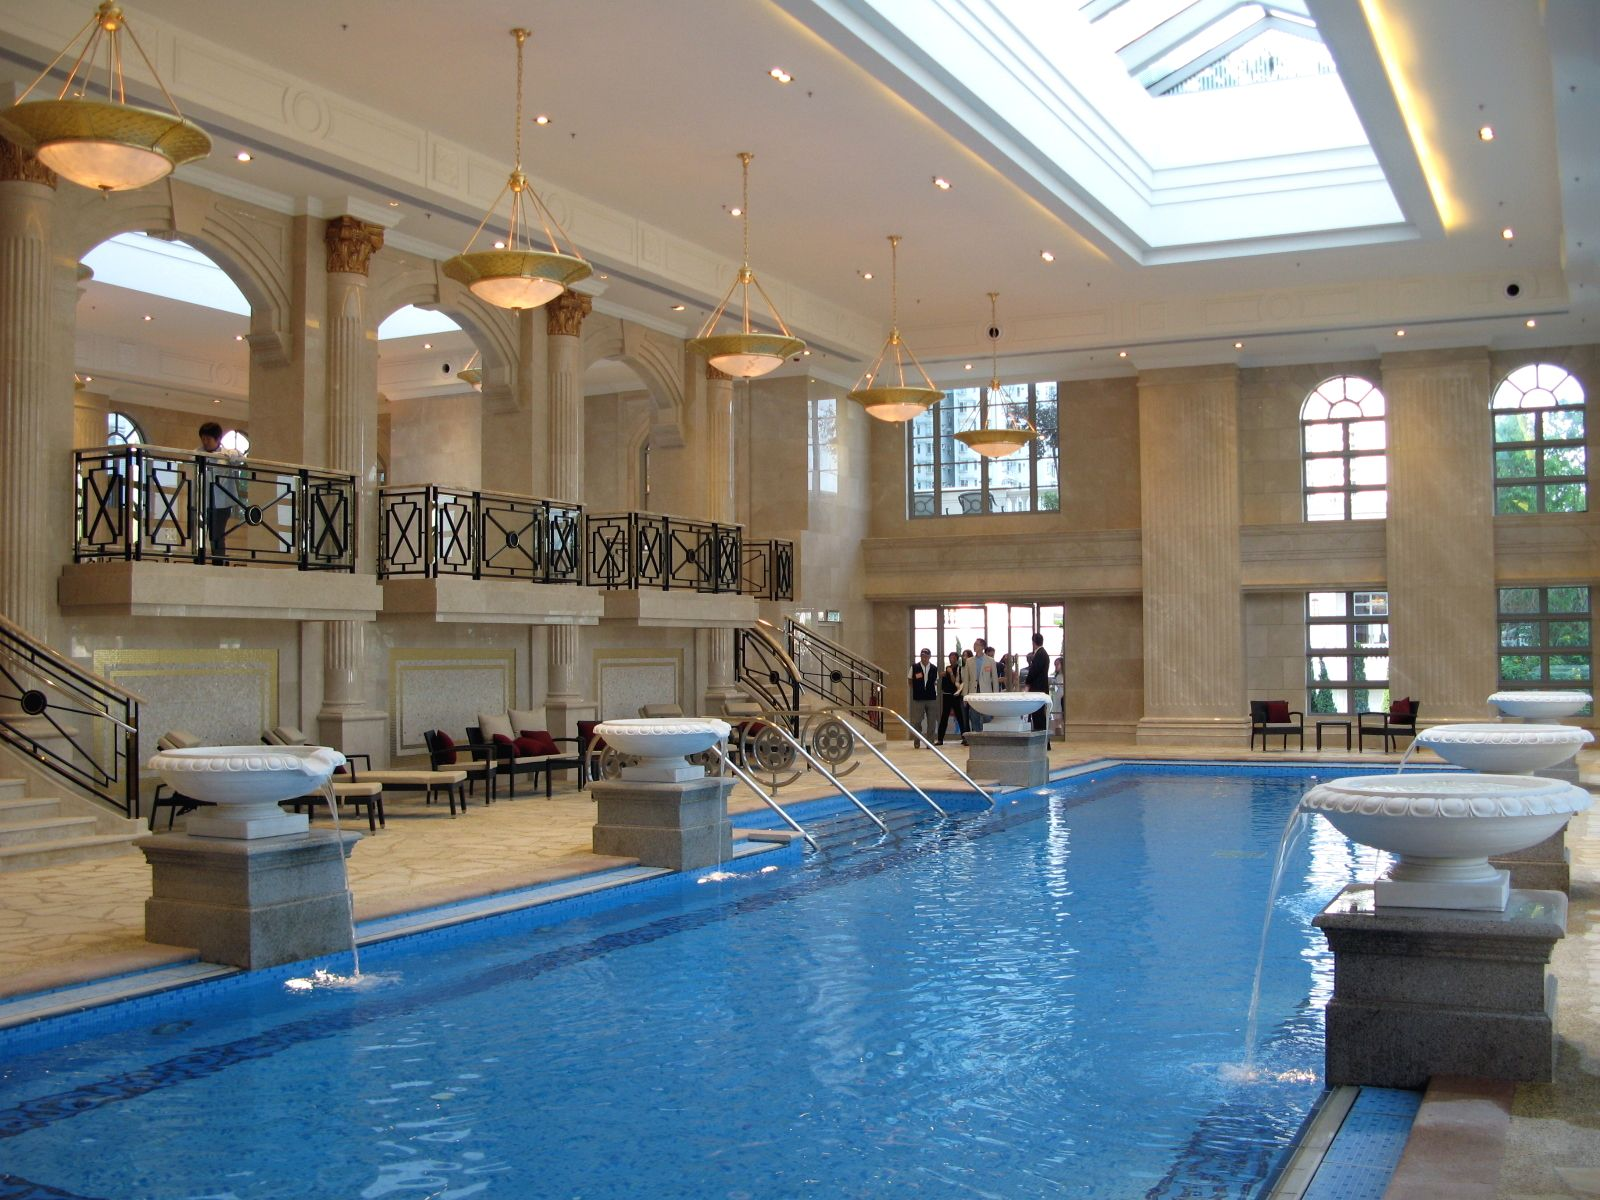 Classy Hotel Indoor Swimming Pool Design With Lengthwise Pool With Classic Fountains Decor And Antique Pendant Lig Schwimmbad Designs Hallenbader Schwimmbecken